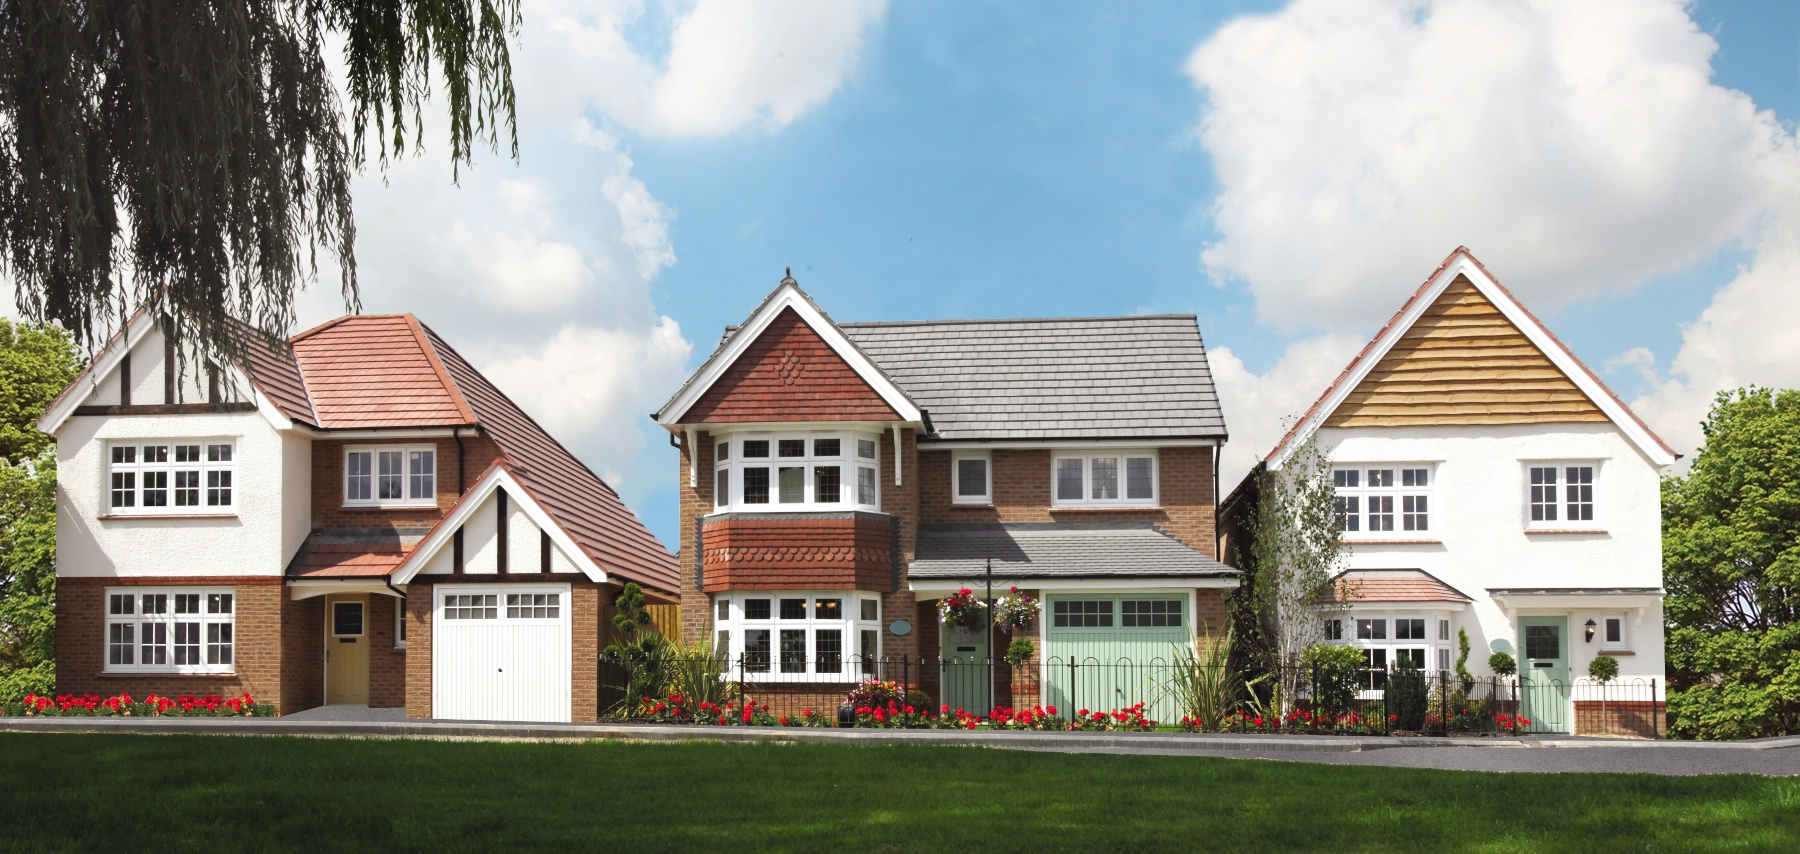 We're proud to be working with Redrow homes